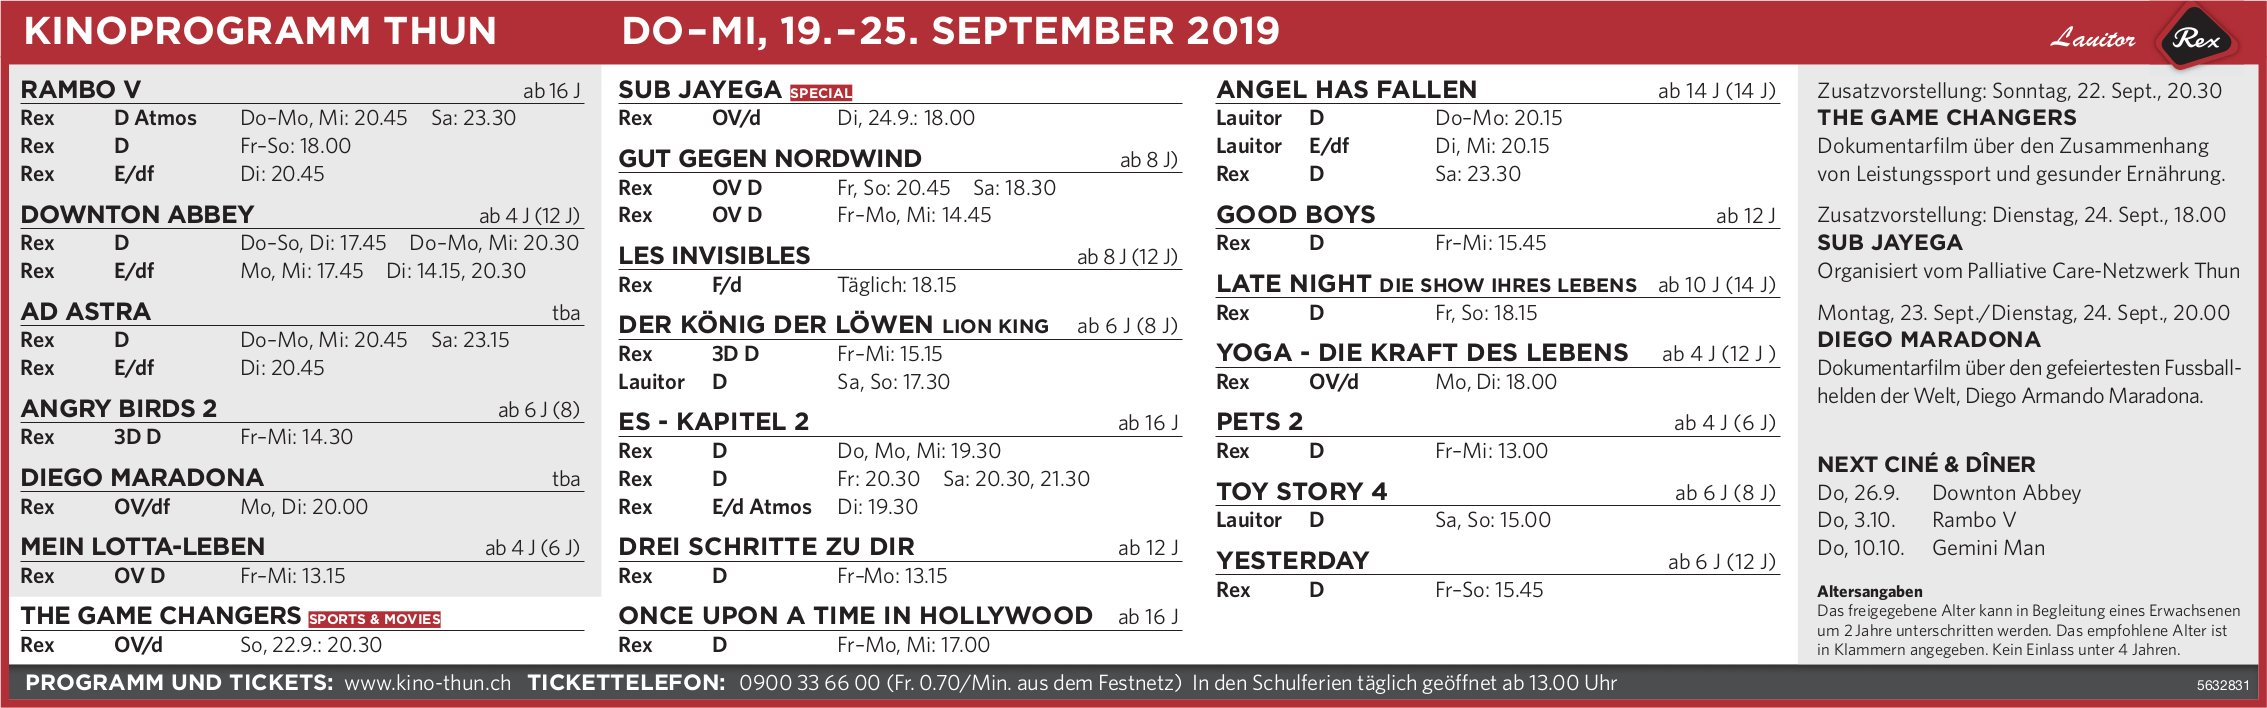 KINOPROGRAMM THUN, DO–MI, 19.–25. SEPTEMBER